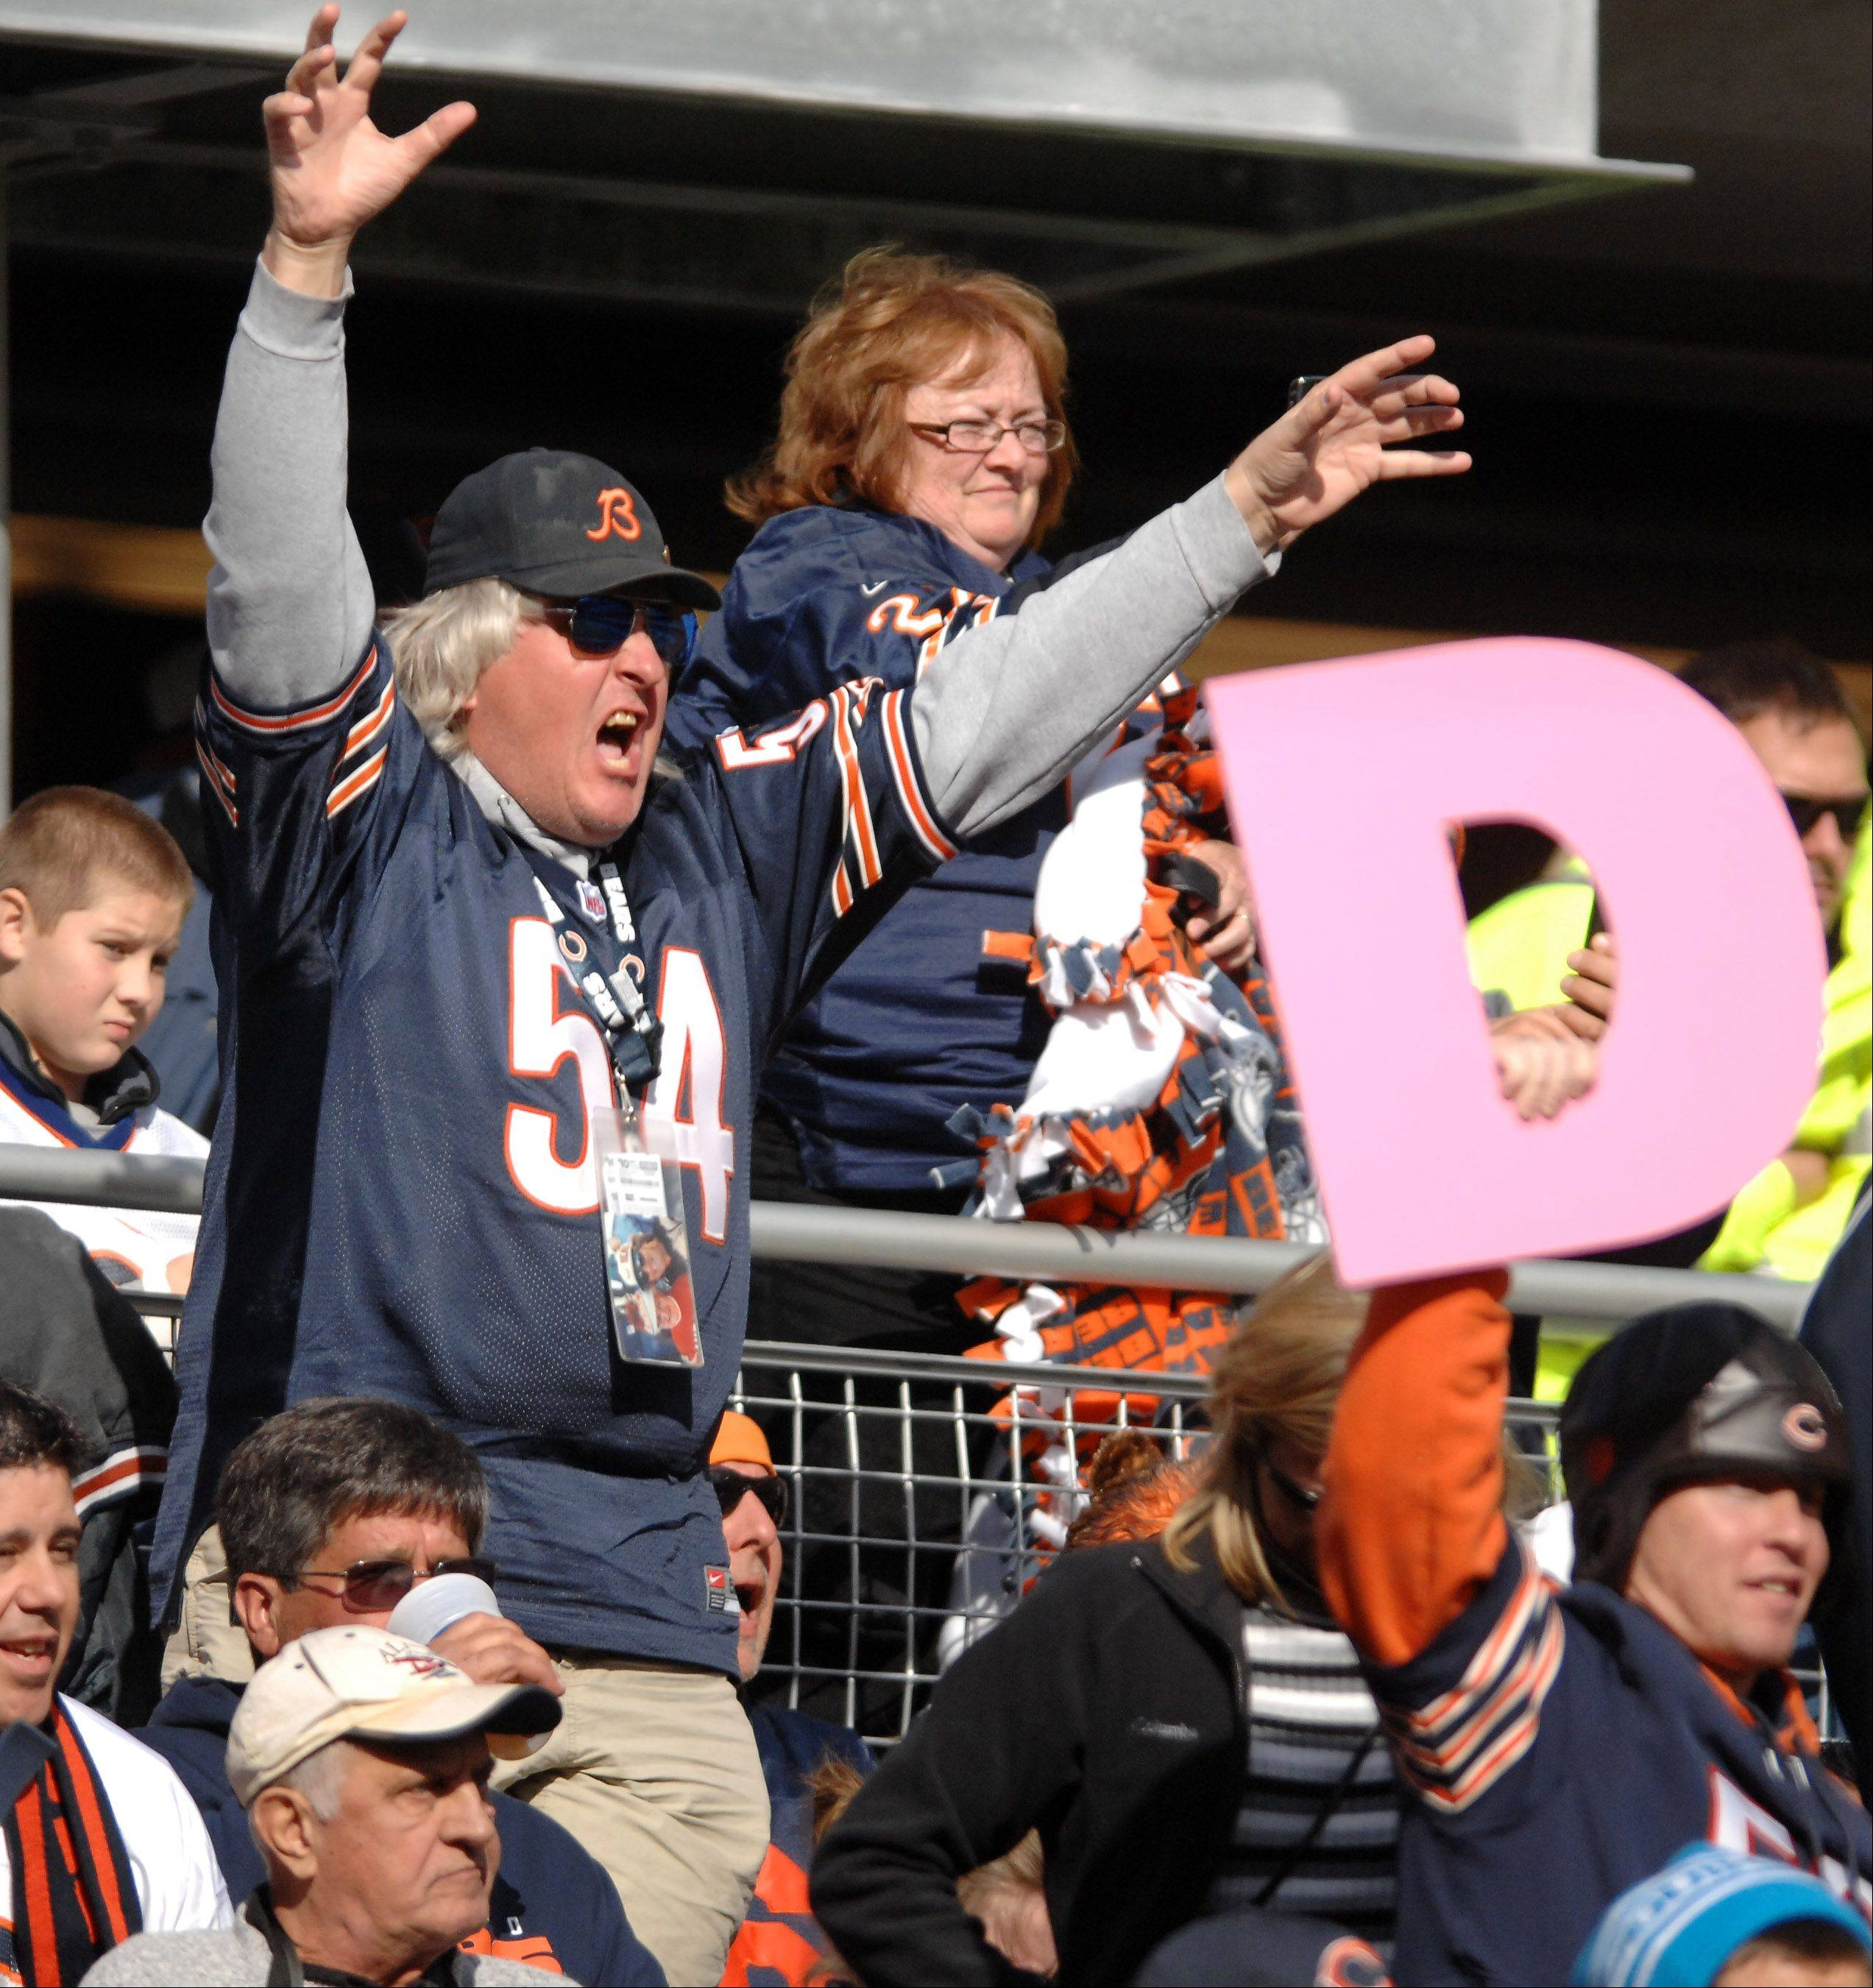 Bears fans urge on the defense during Sunday's game at Soldier Field in Chicago.